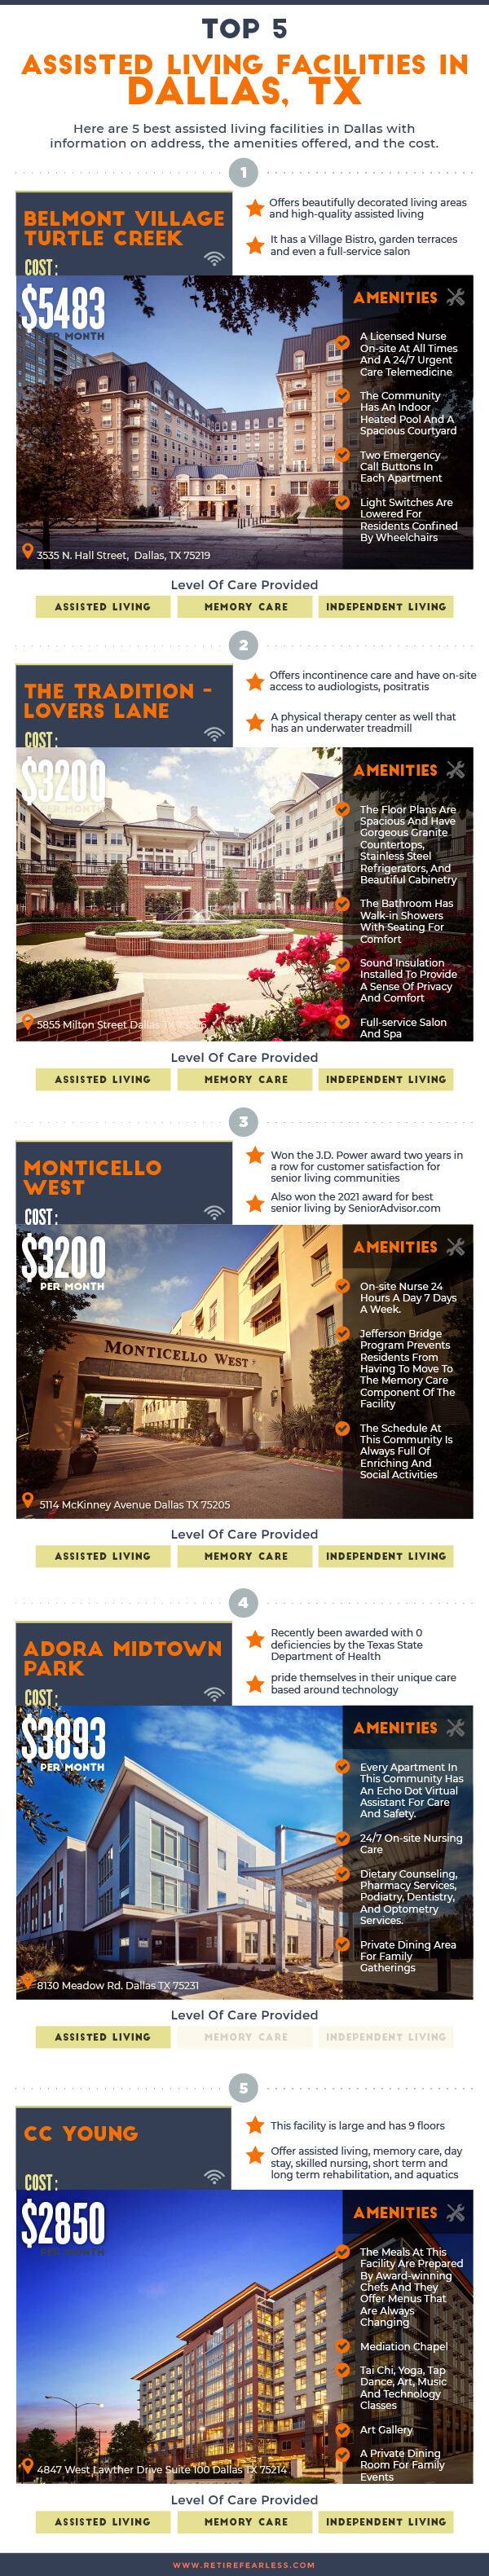 5 Best Assisted Living Facilities Dallas, TX